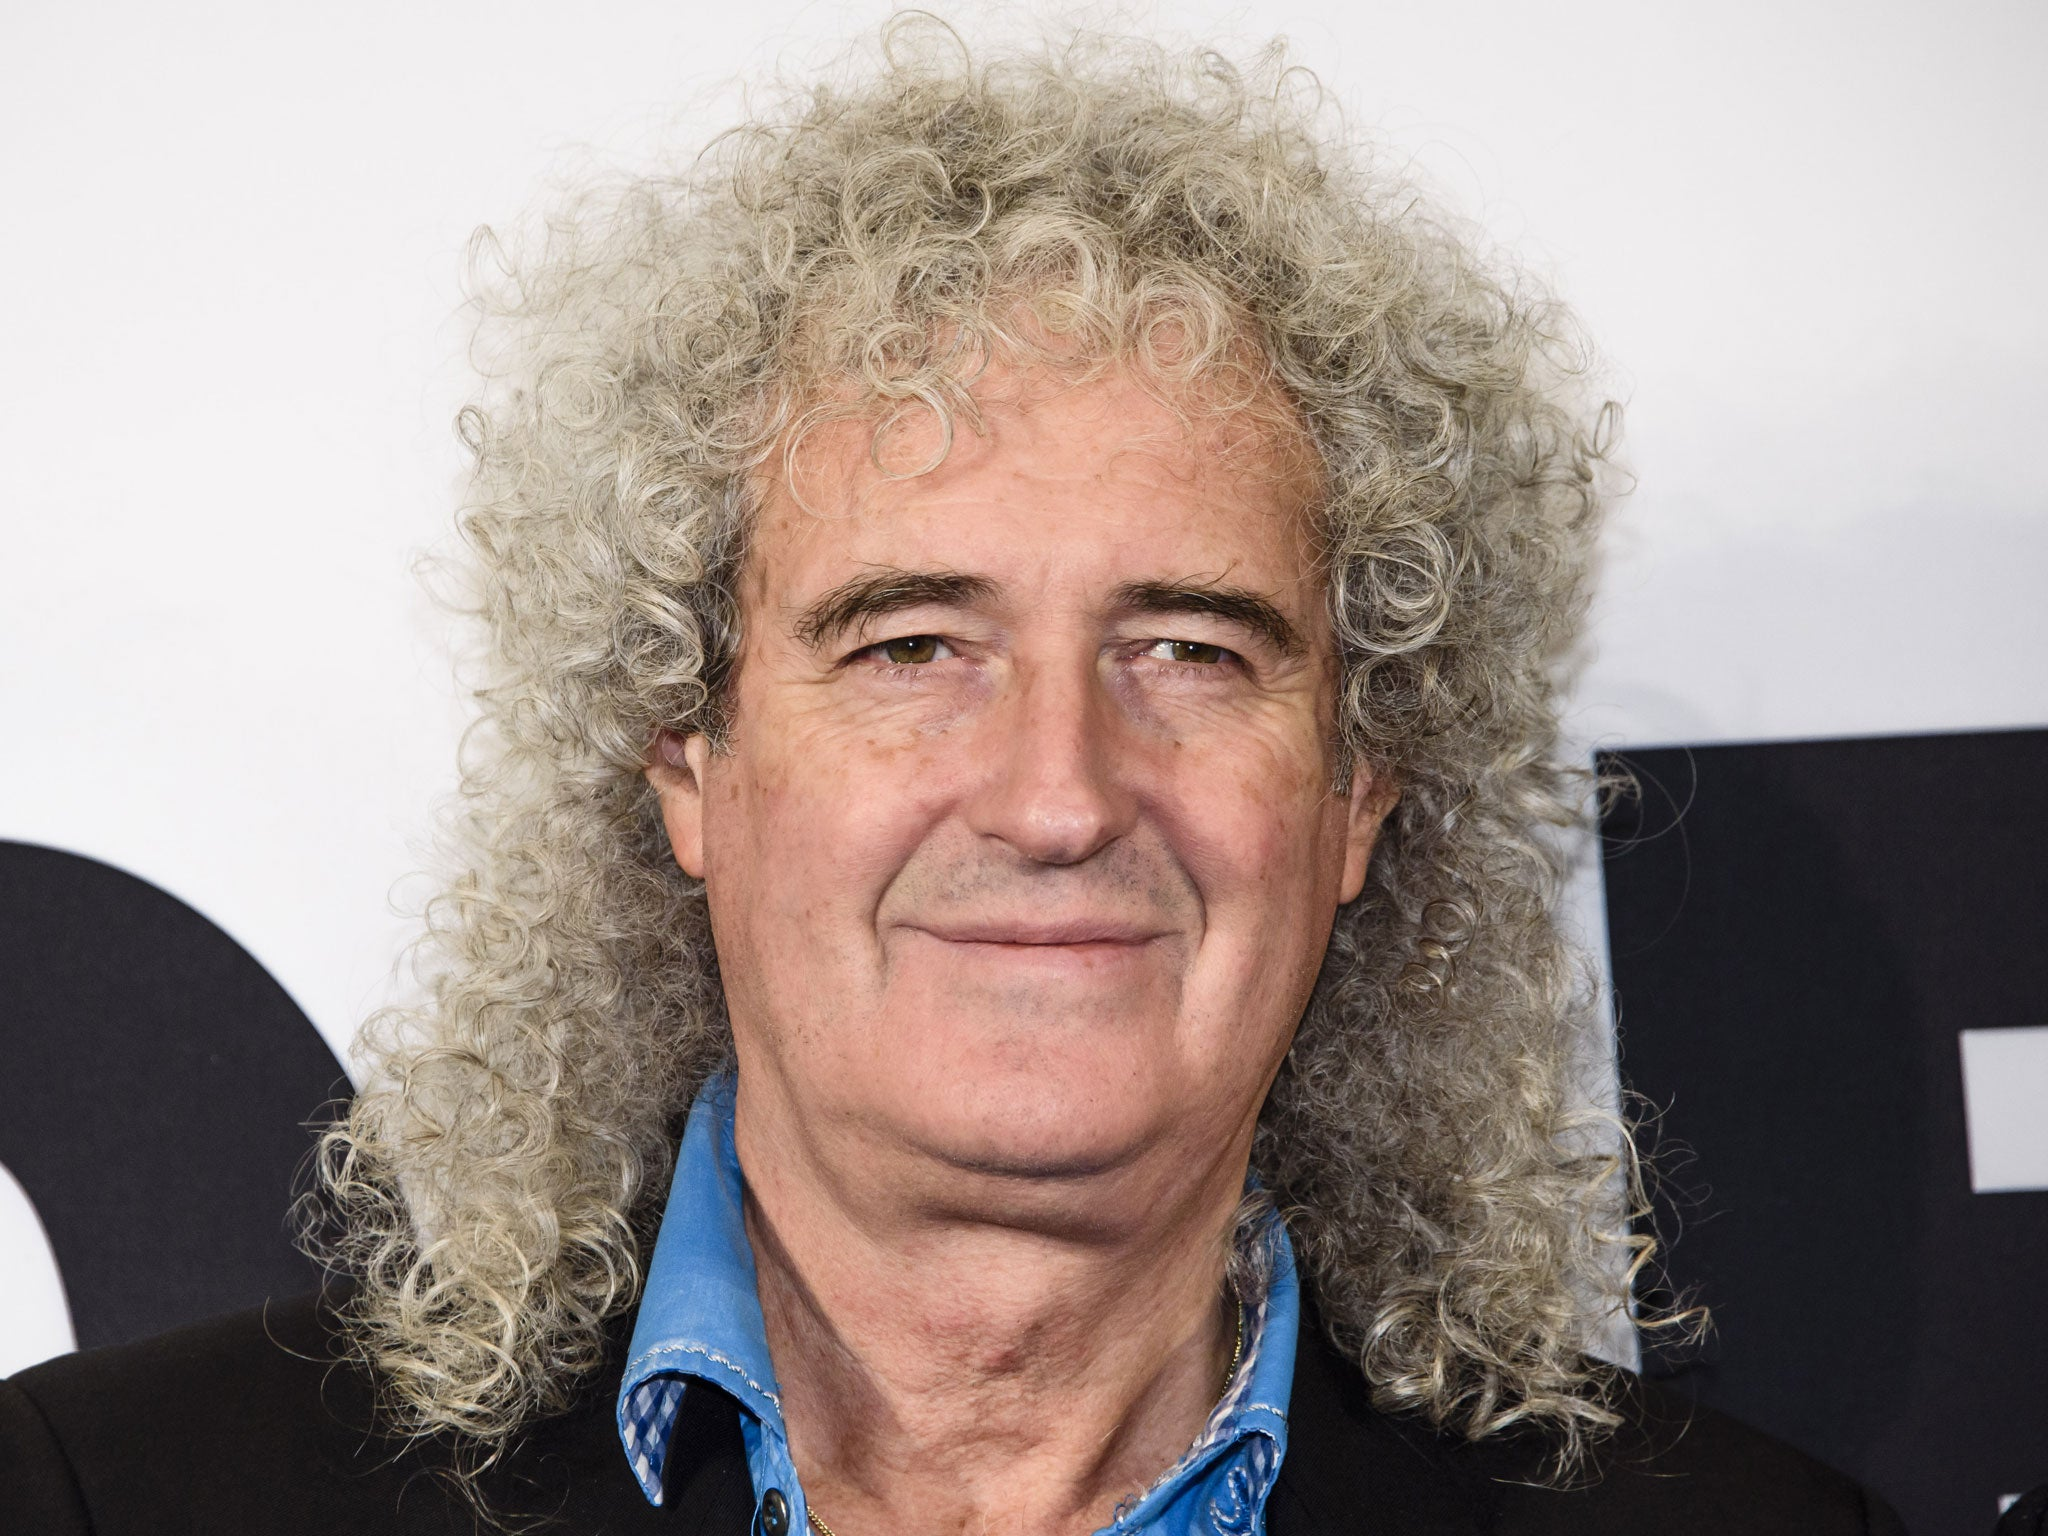 brian may dream of thee